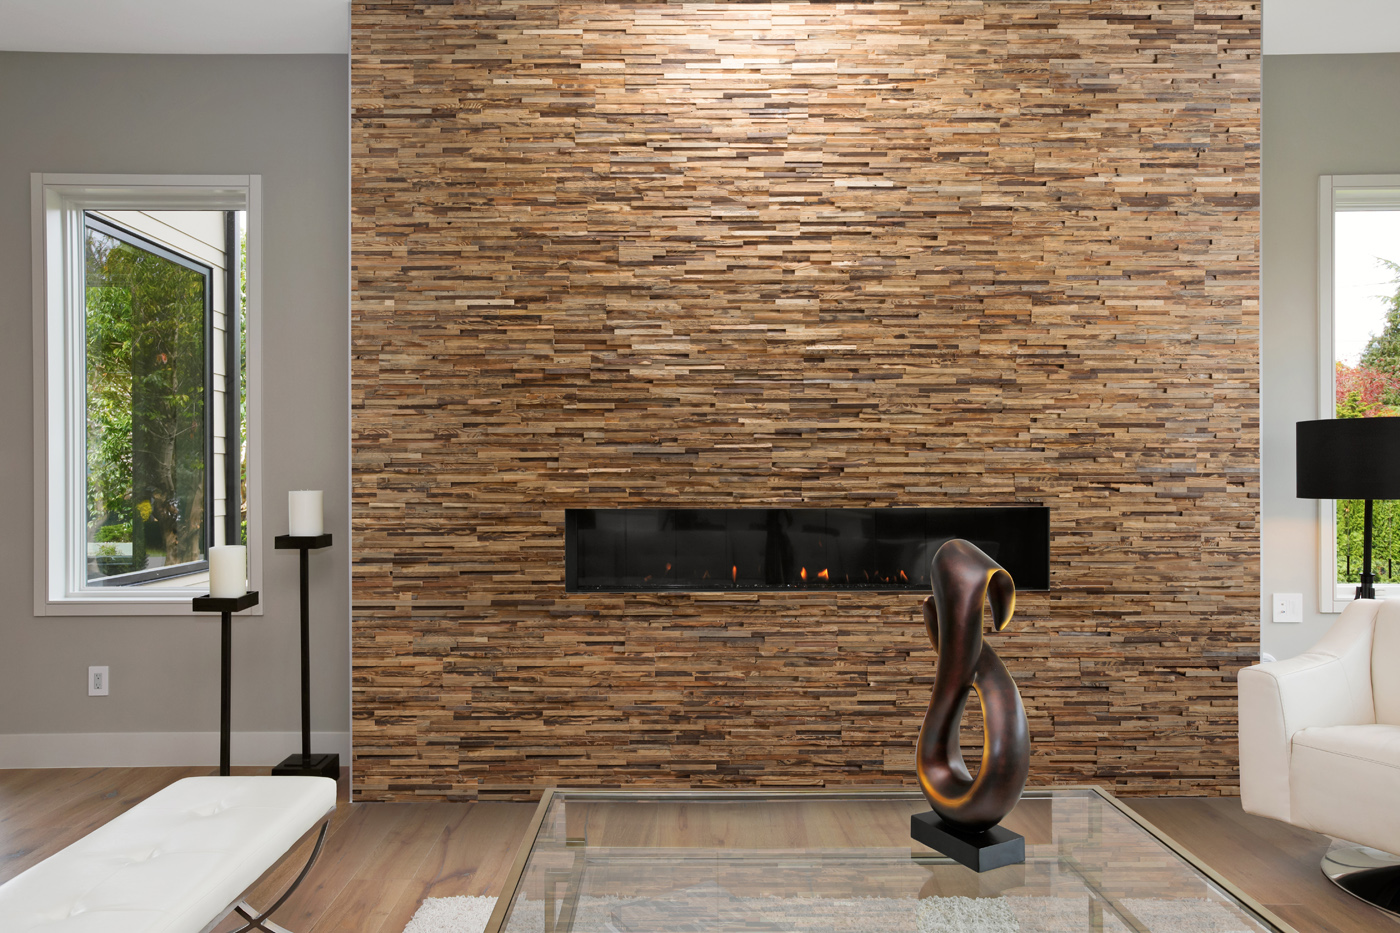 Wall panel Incognito in living room interior